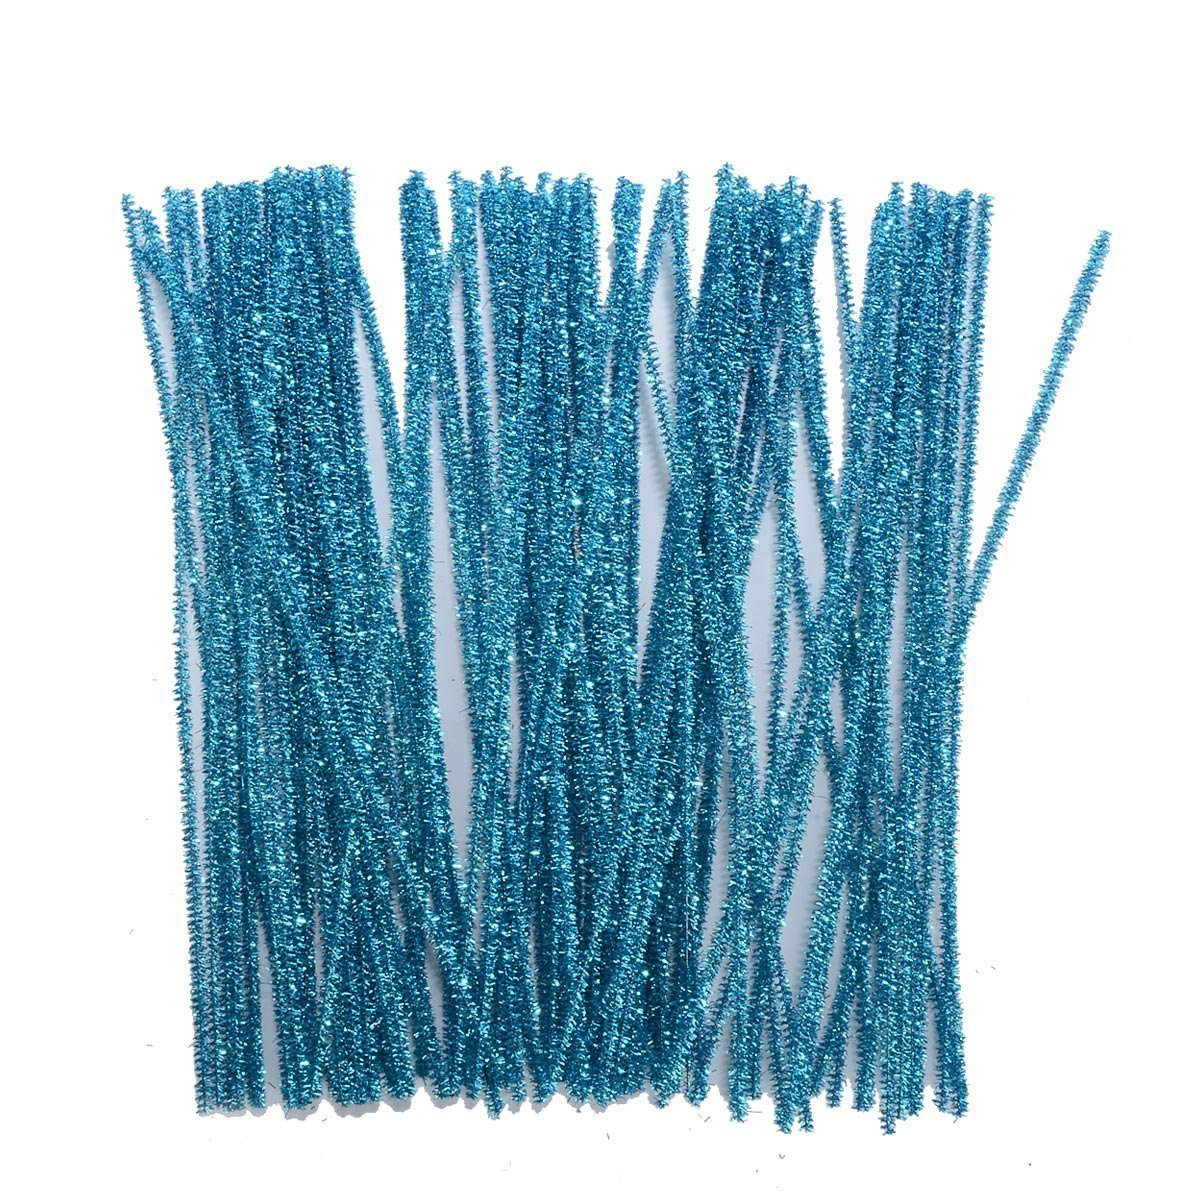 Saim 100 PCS 12 Inch Glitter Sparkle Creative Arts Stems Pipe Cleaners for DIY Craft